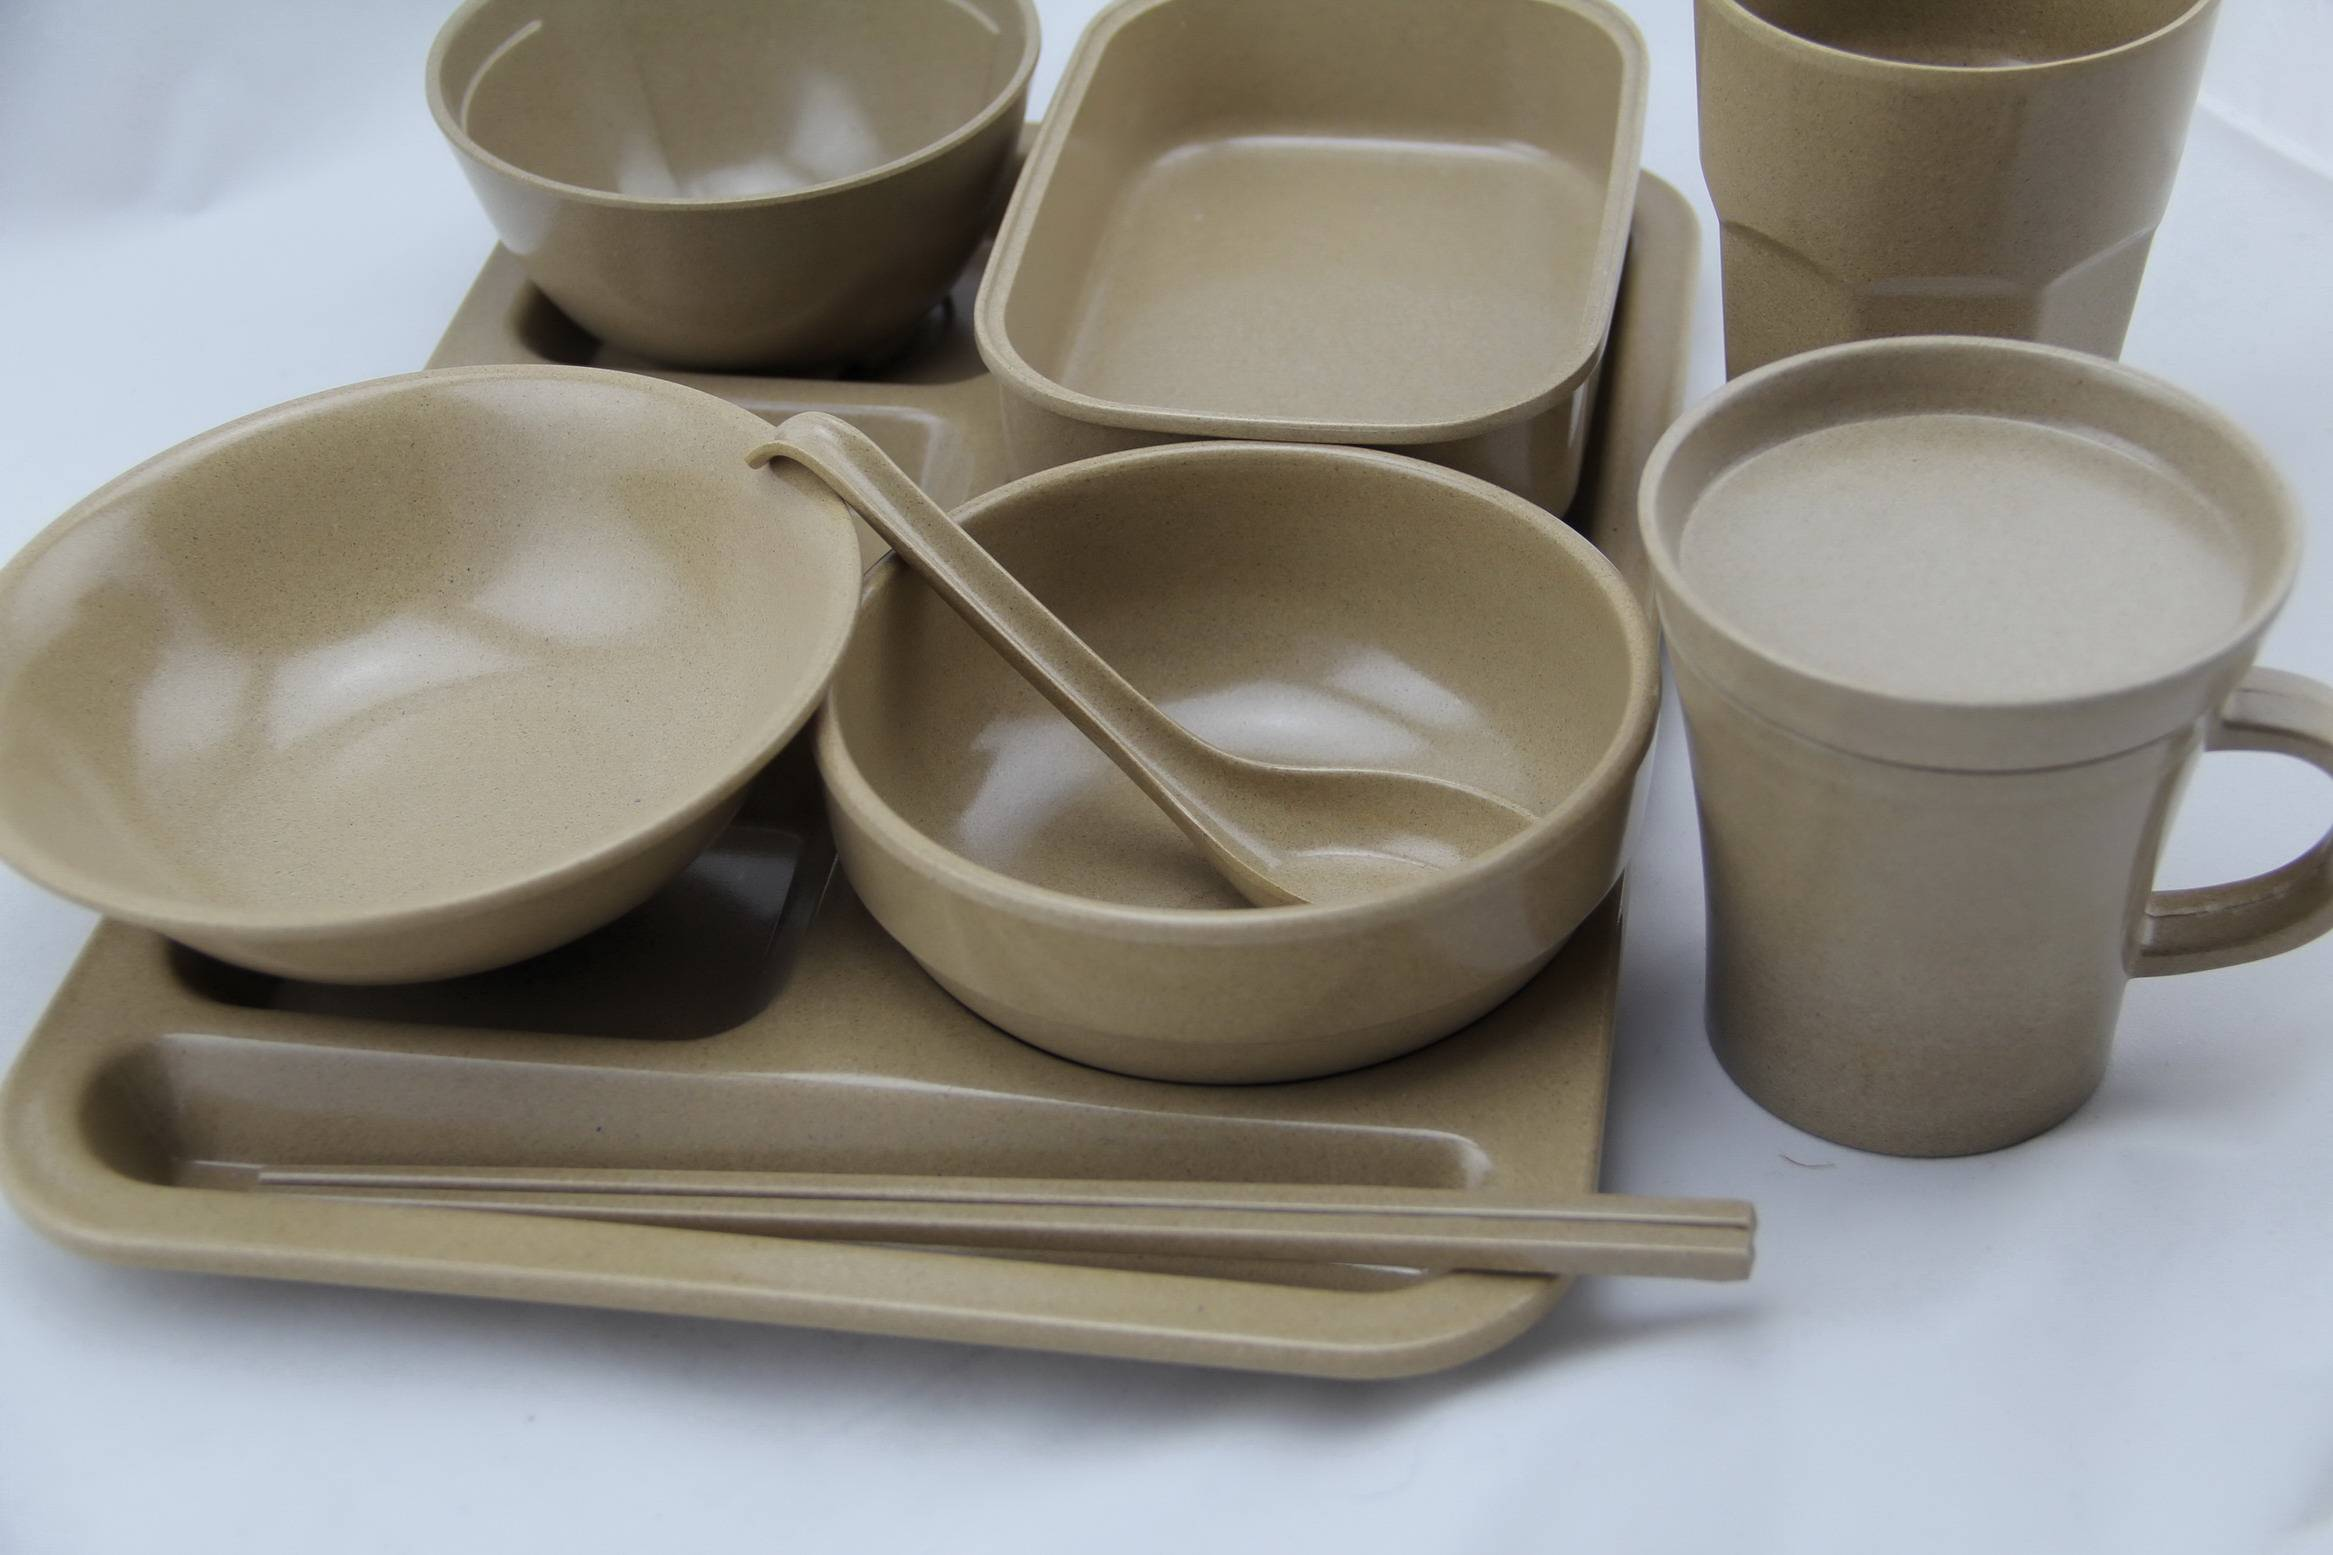 Eco friendly tableware from rice husks